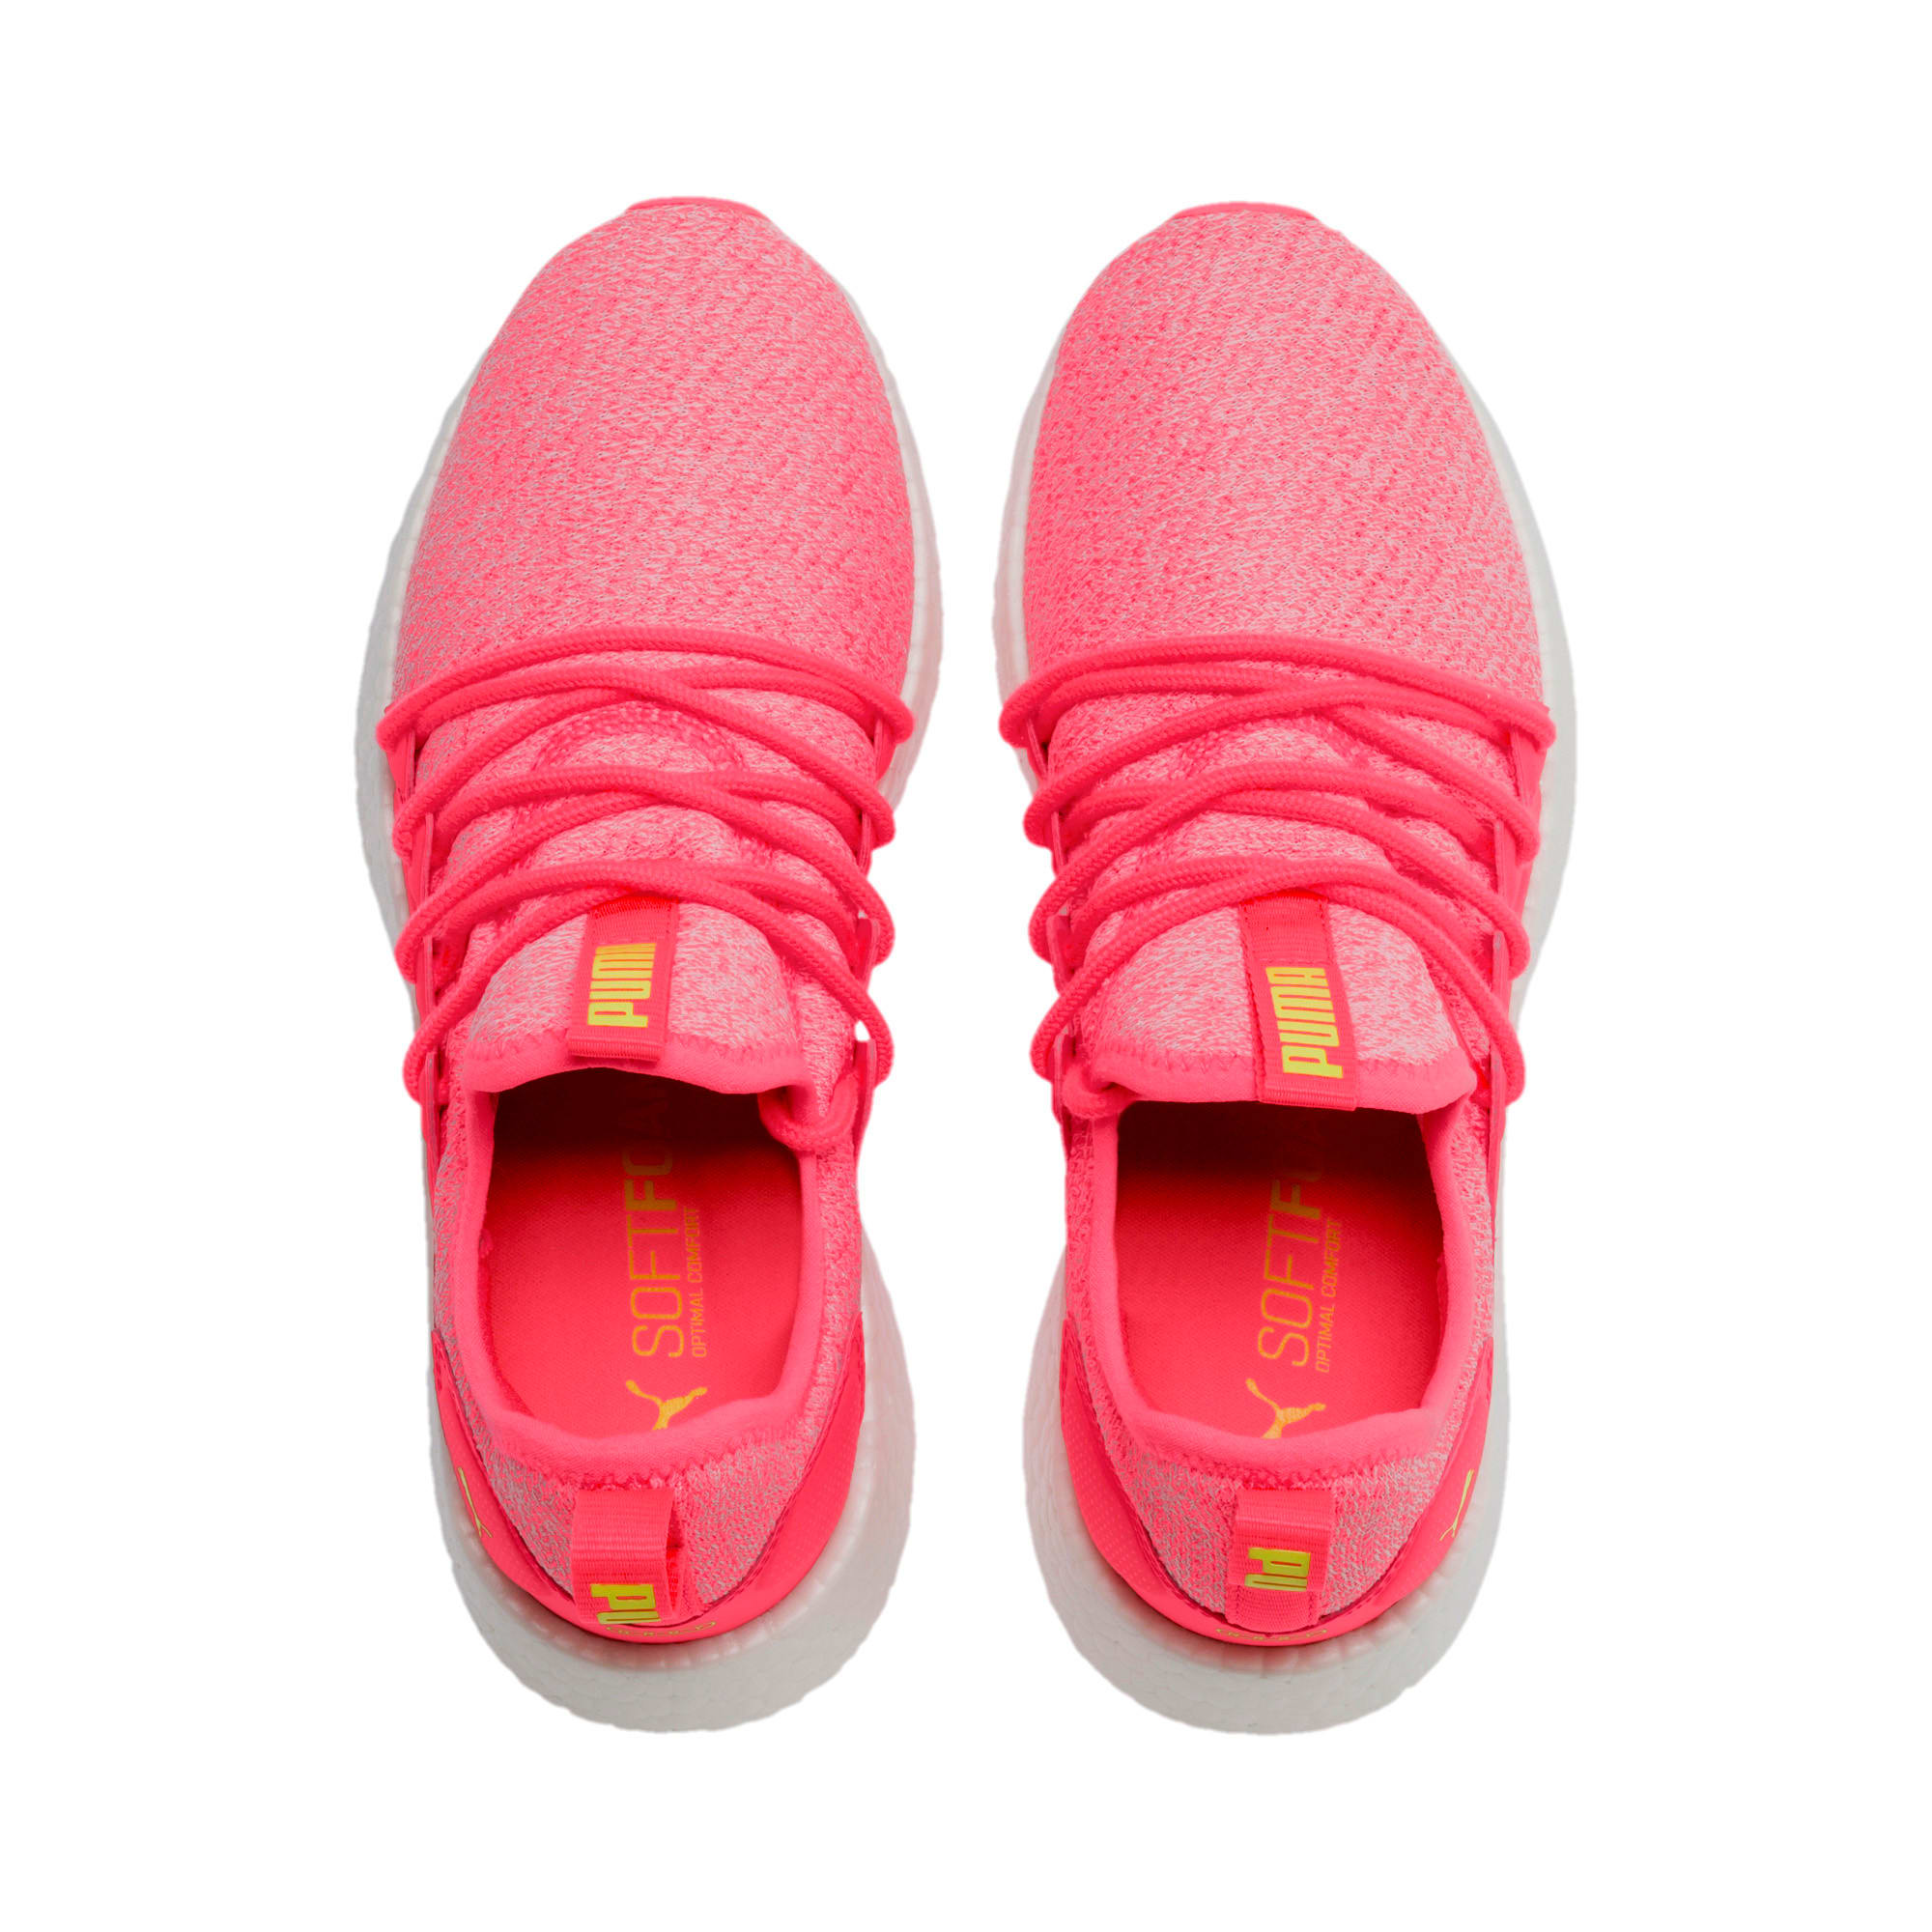 Thumbnail 4 of NRGY Neko Knit Women's Running Shoes, Pink Alert-Puma White, medium-IND